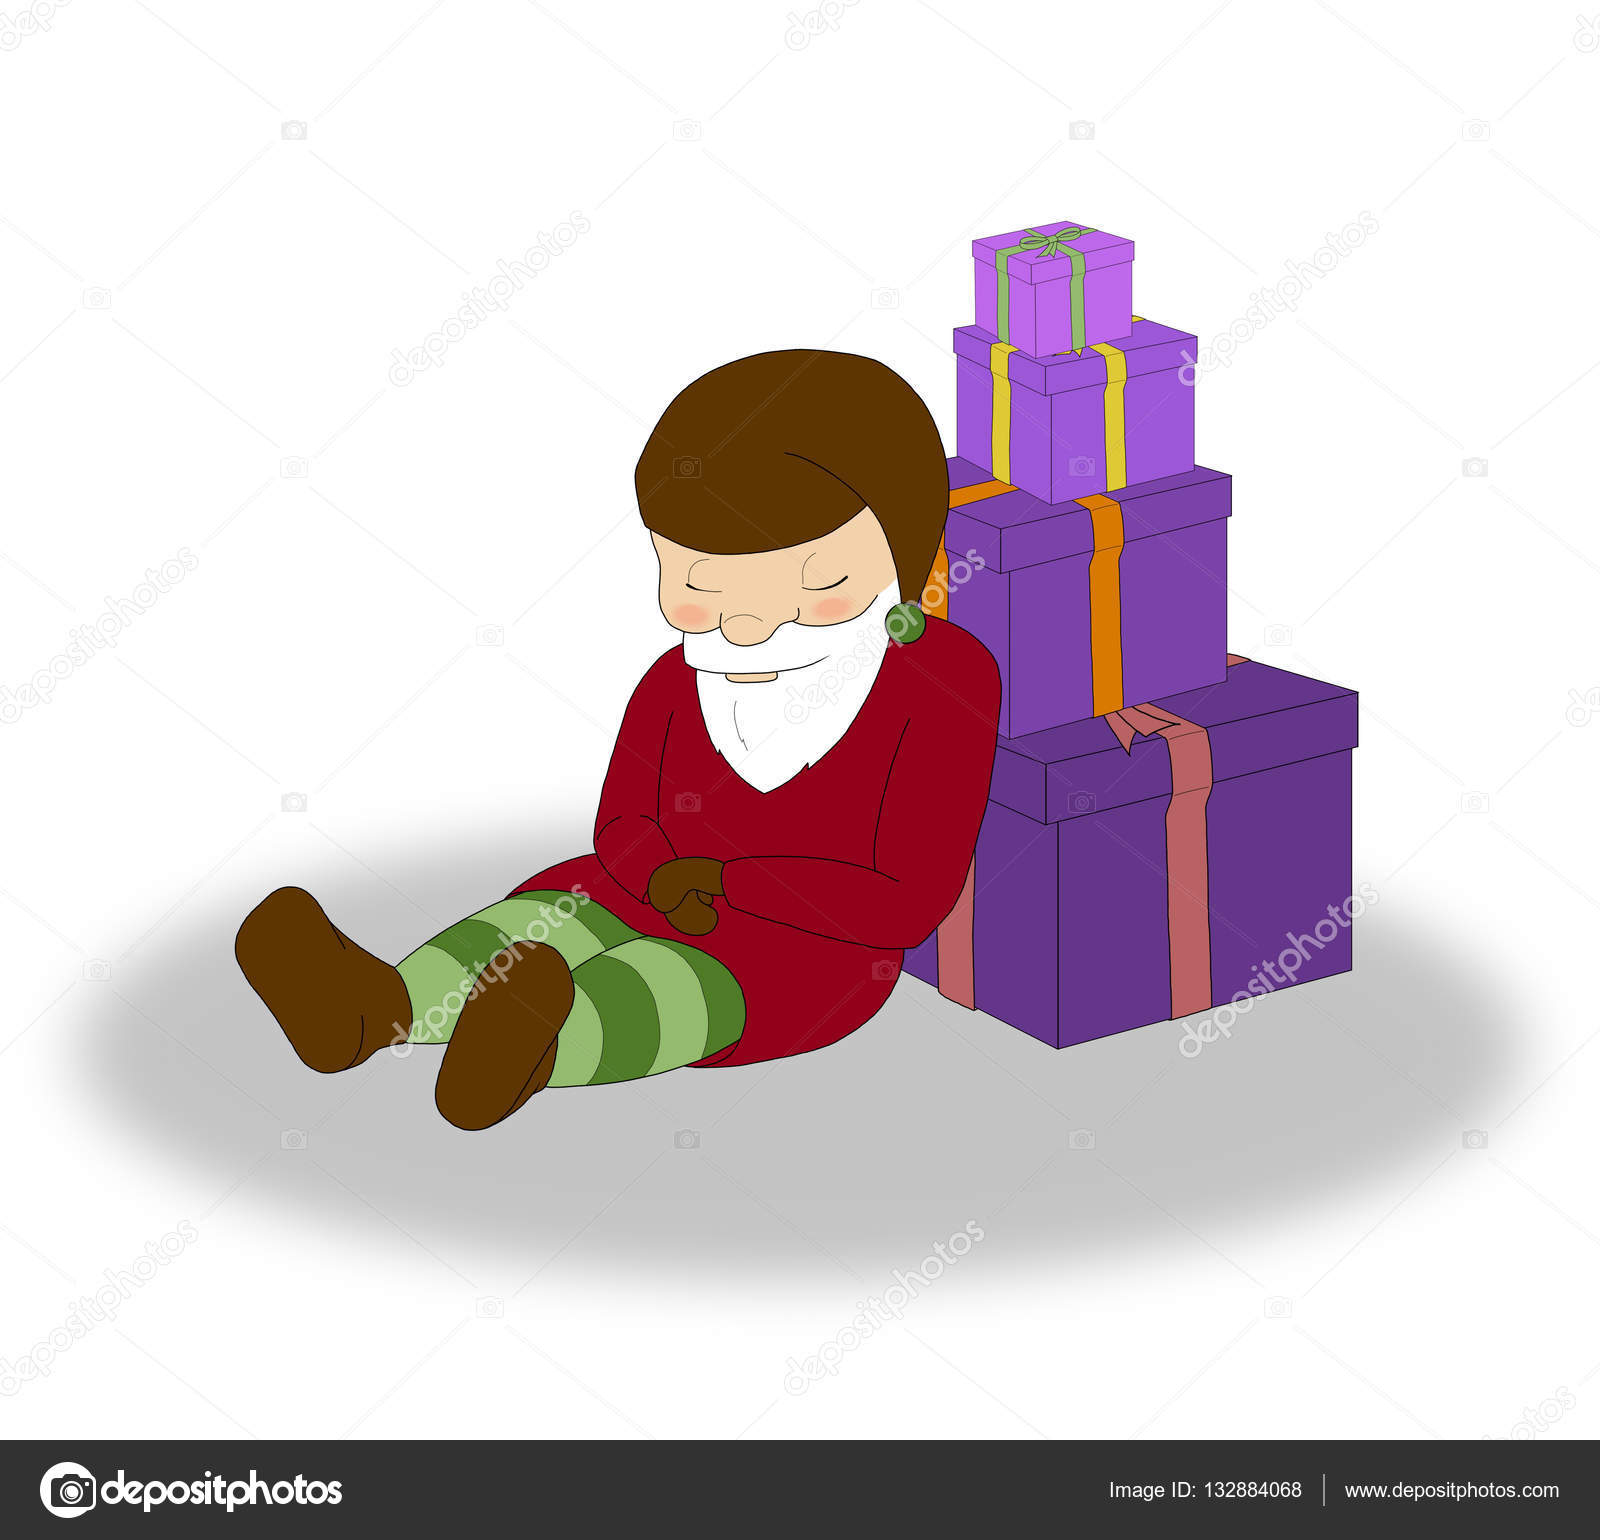 illustration of christmas sleeping elf with a lot of purple gift